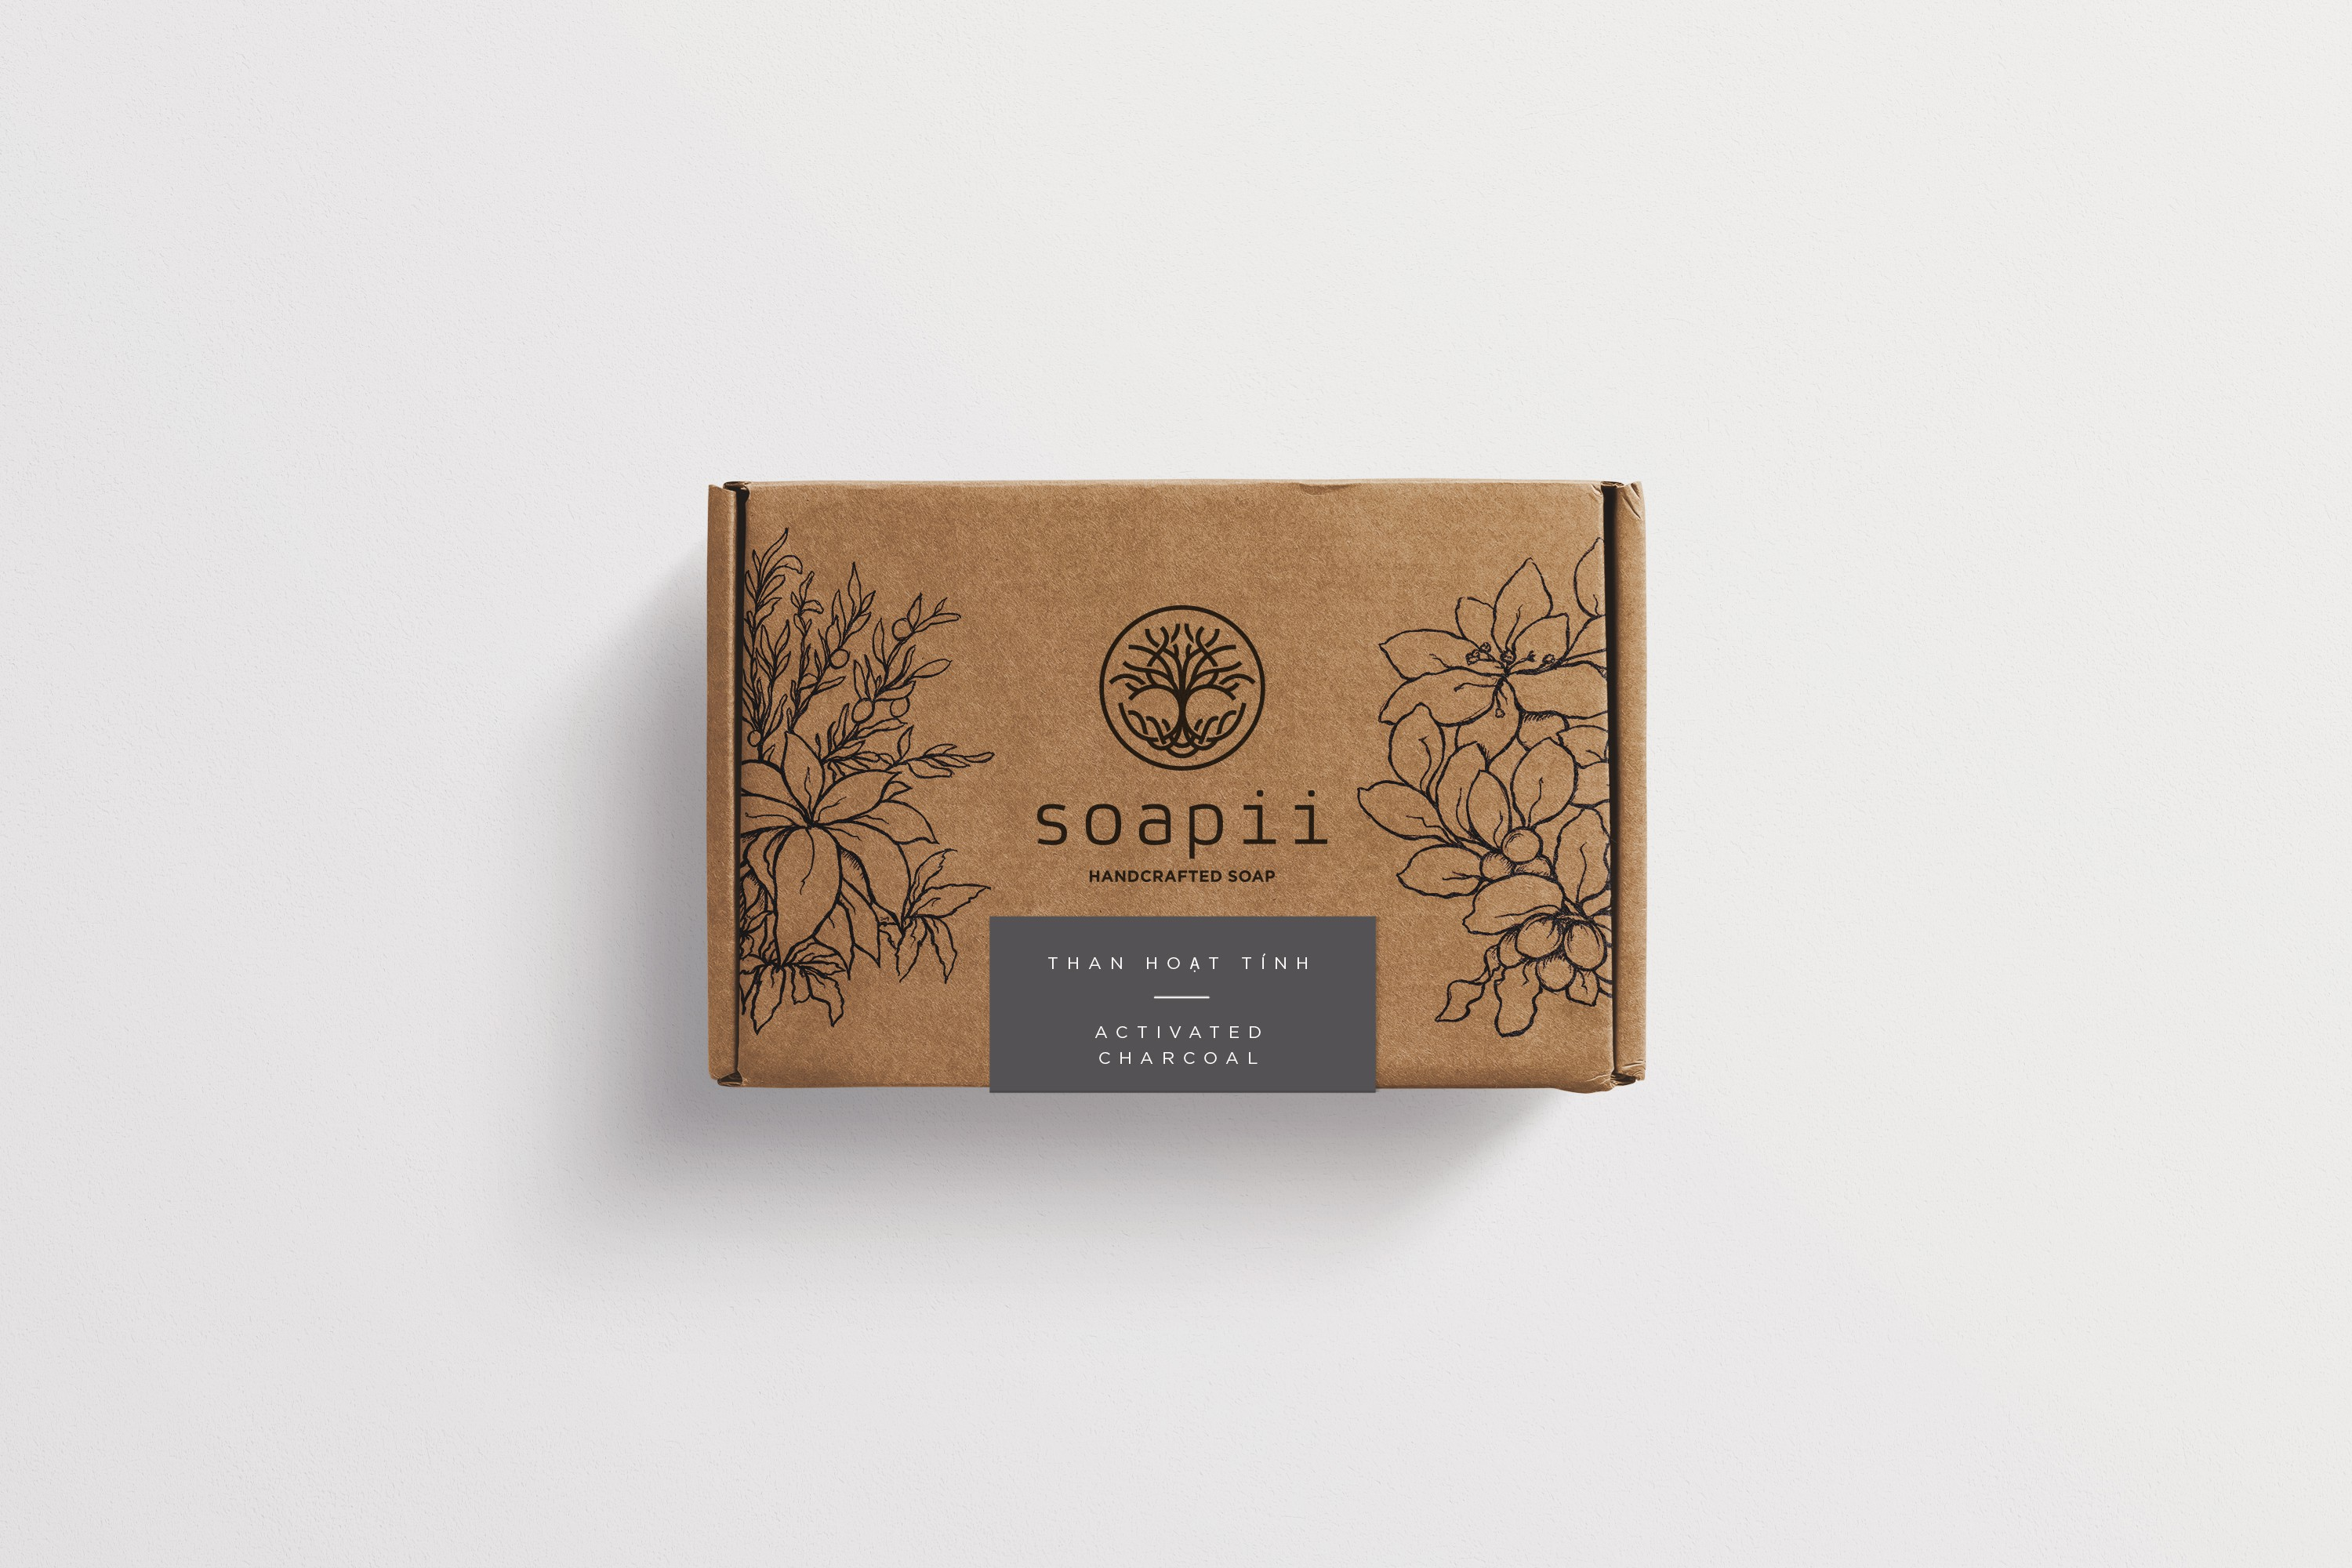 Soapii Handcrafted Soap needs Sophisticated, Elegant Packaging